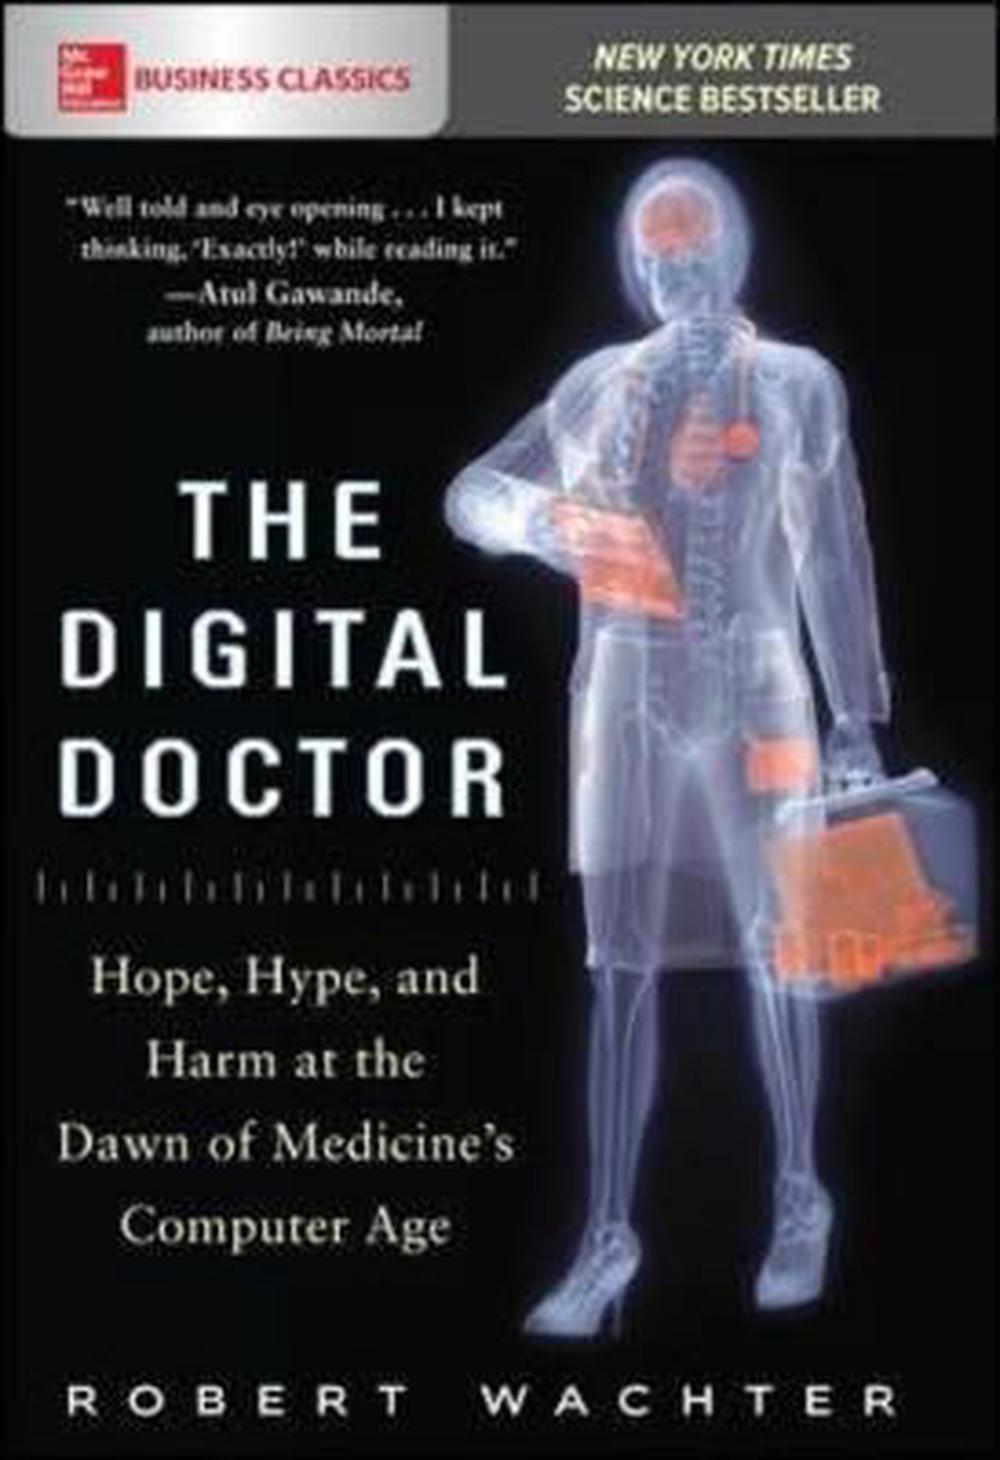 The Digital Doctor: Hope, Hype, and Harm at the Dawn of Medicine S Computer Age